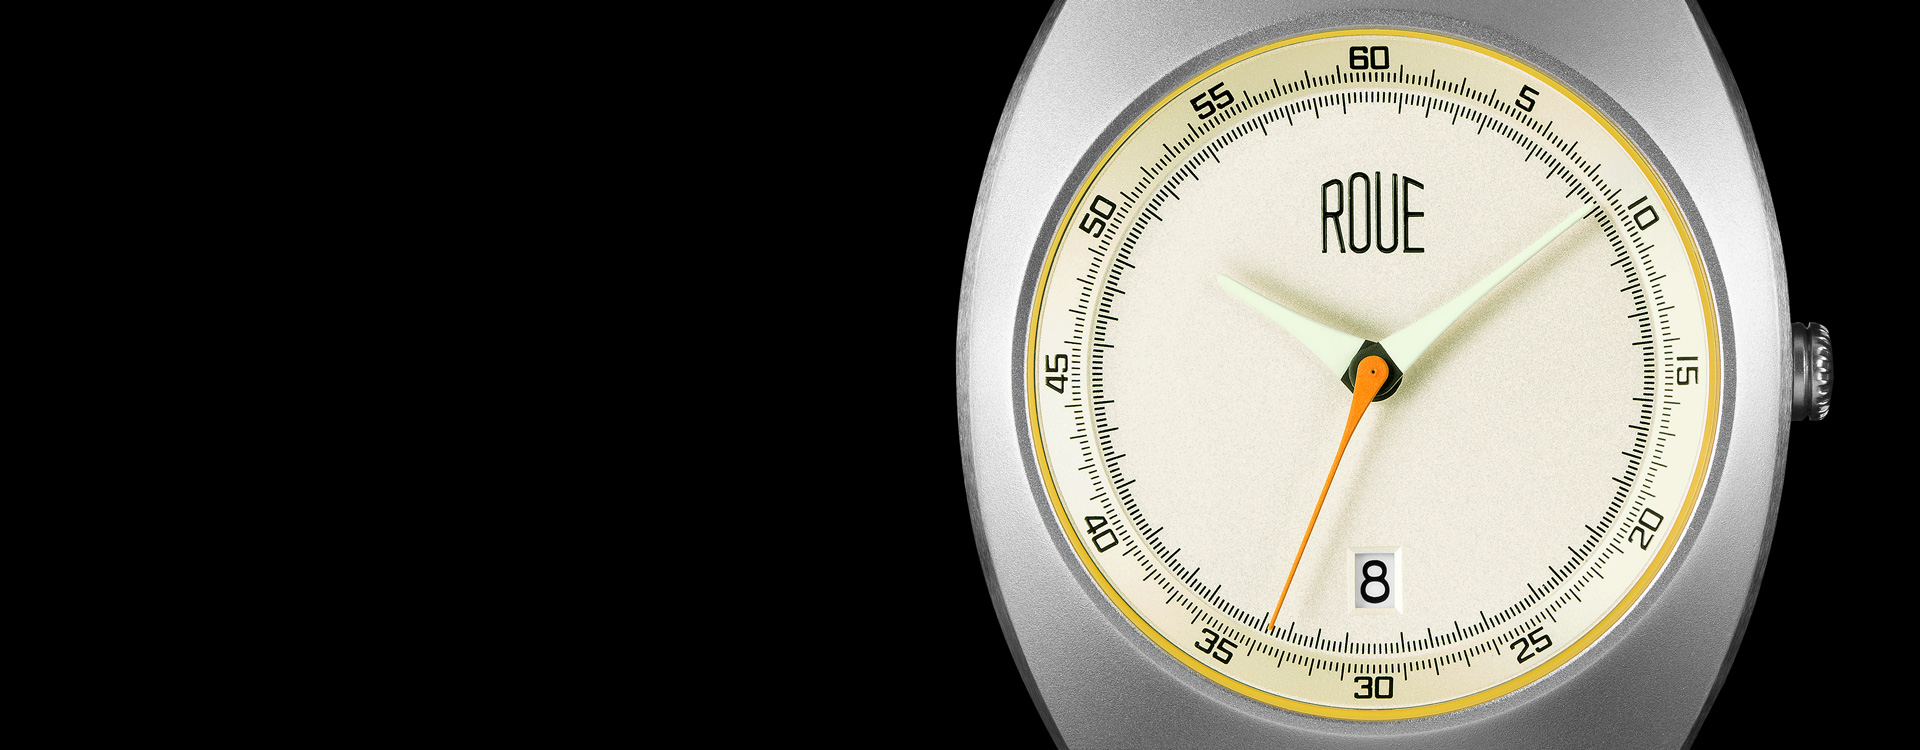 Roue Watch CAL Model